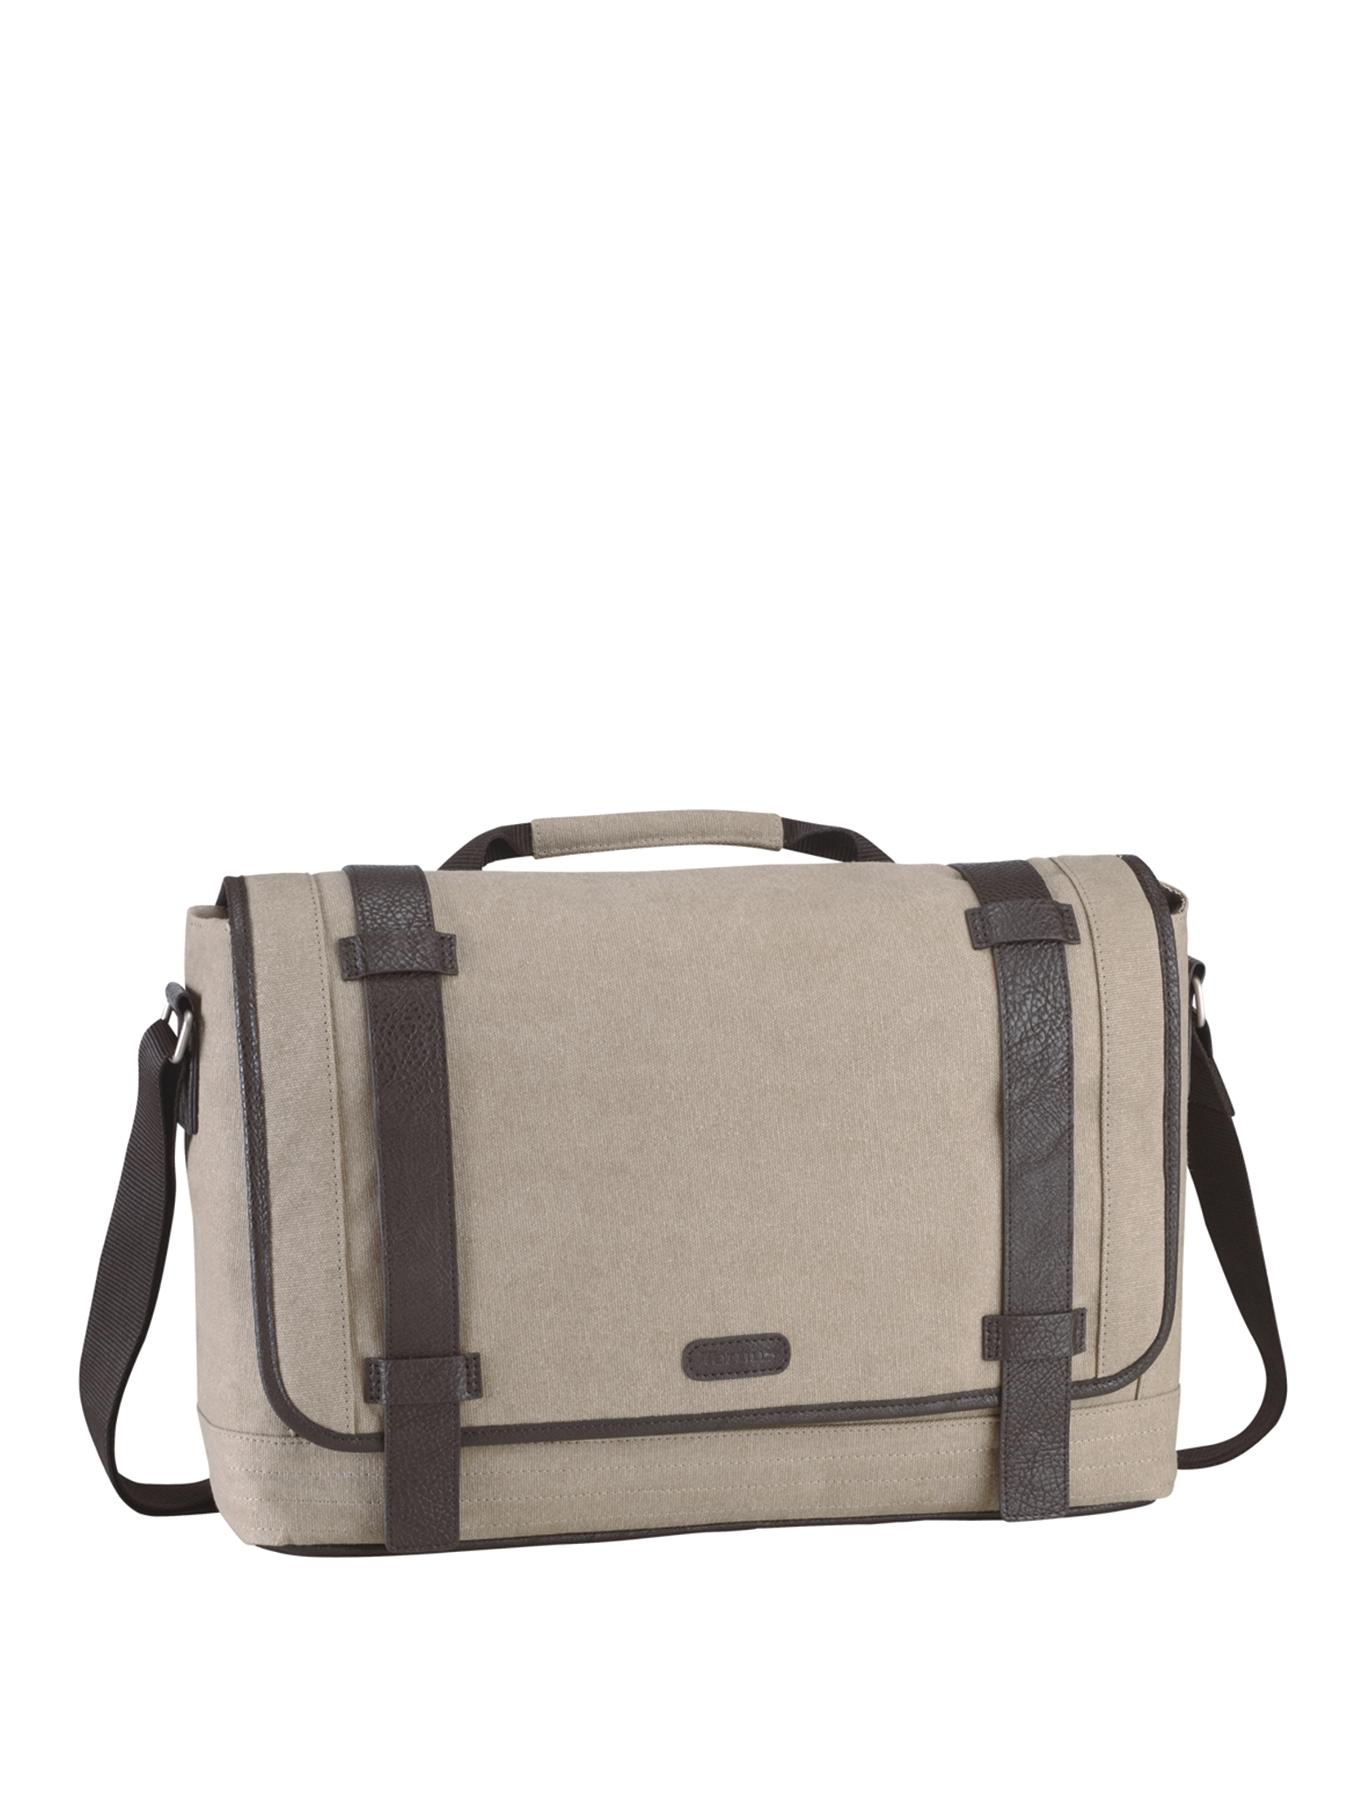 Targus City Fusion 15.6 inch Messenger Laptop Bag